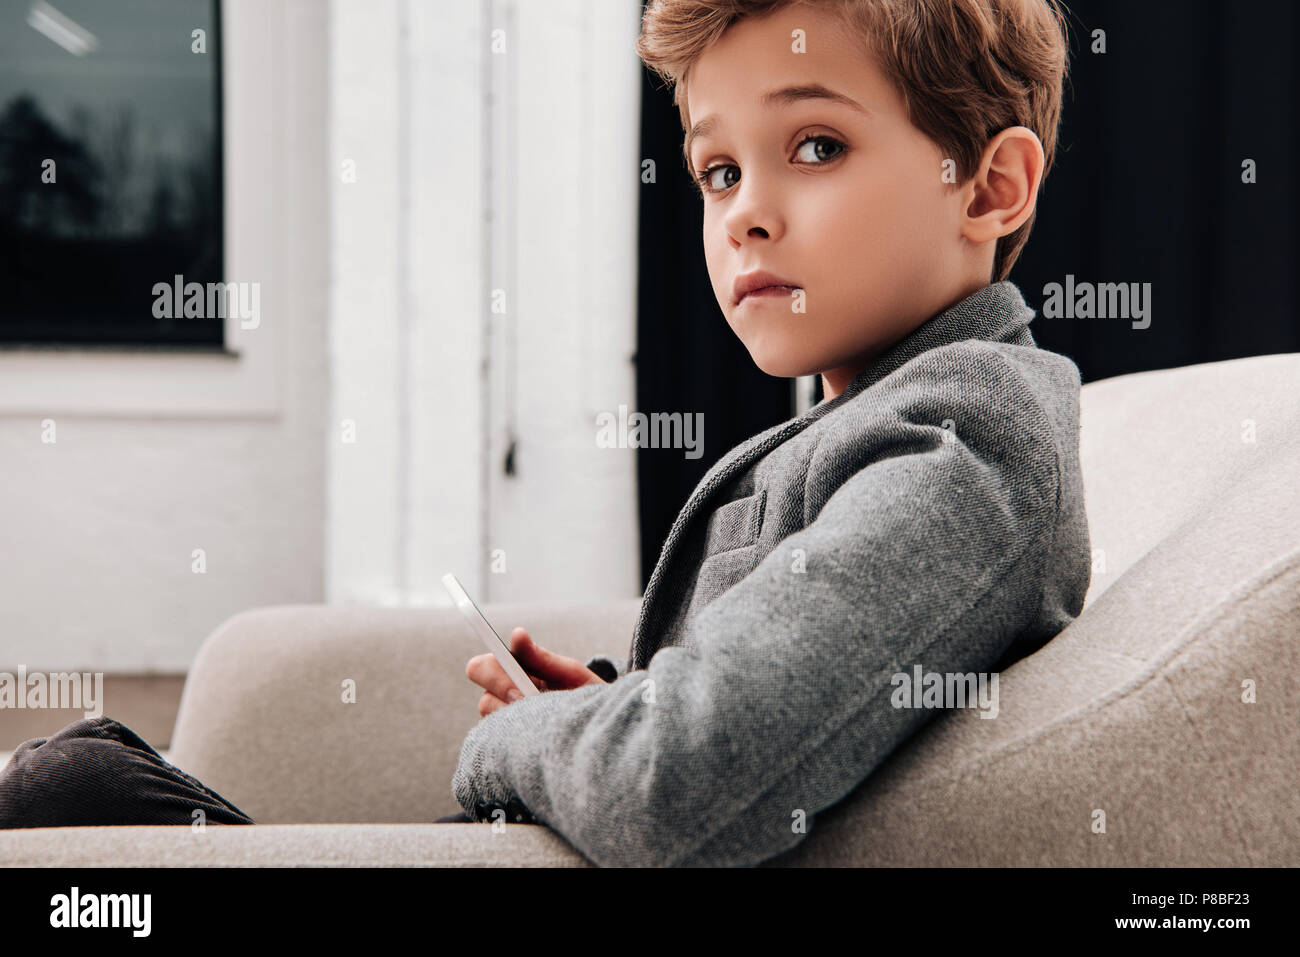 stylish little boy sitting in comfy armchair and using smartphone - Stock Image